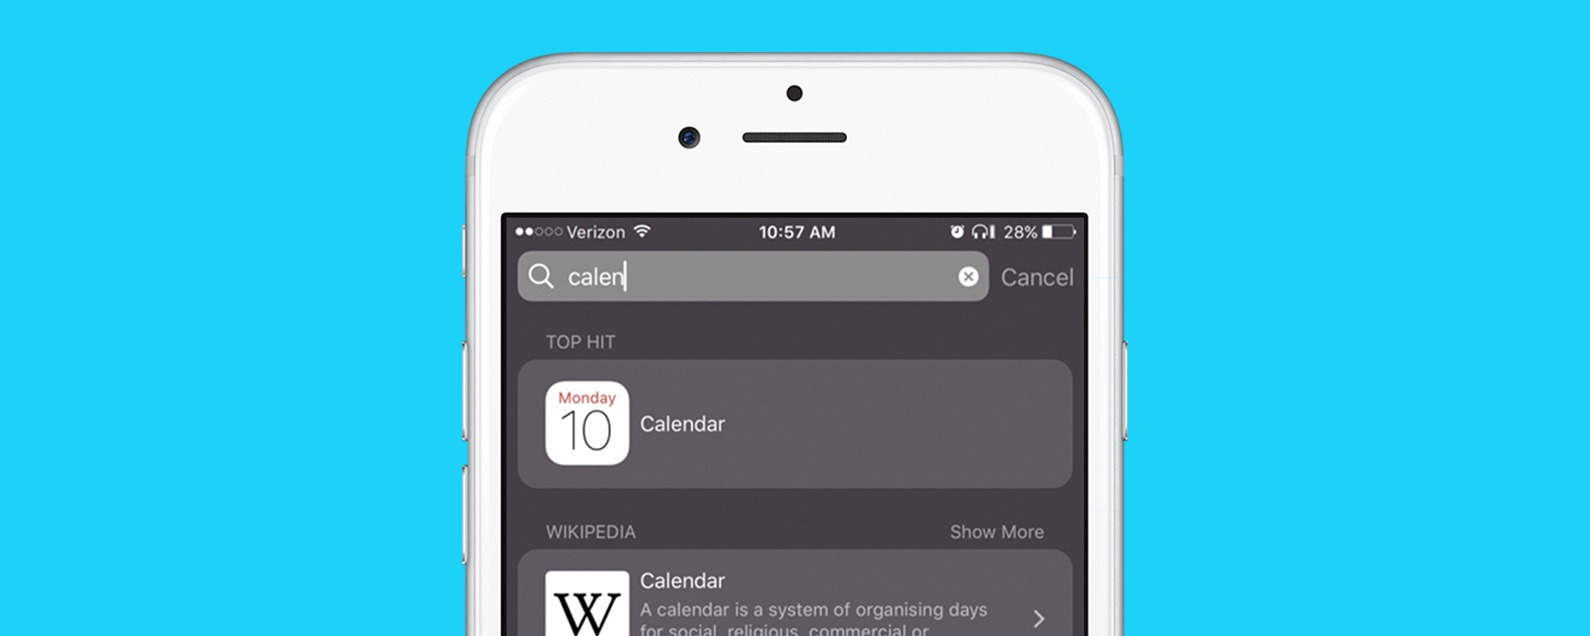 iPhone Calendar Disappeared? How to Get it Back on Your